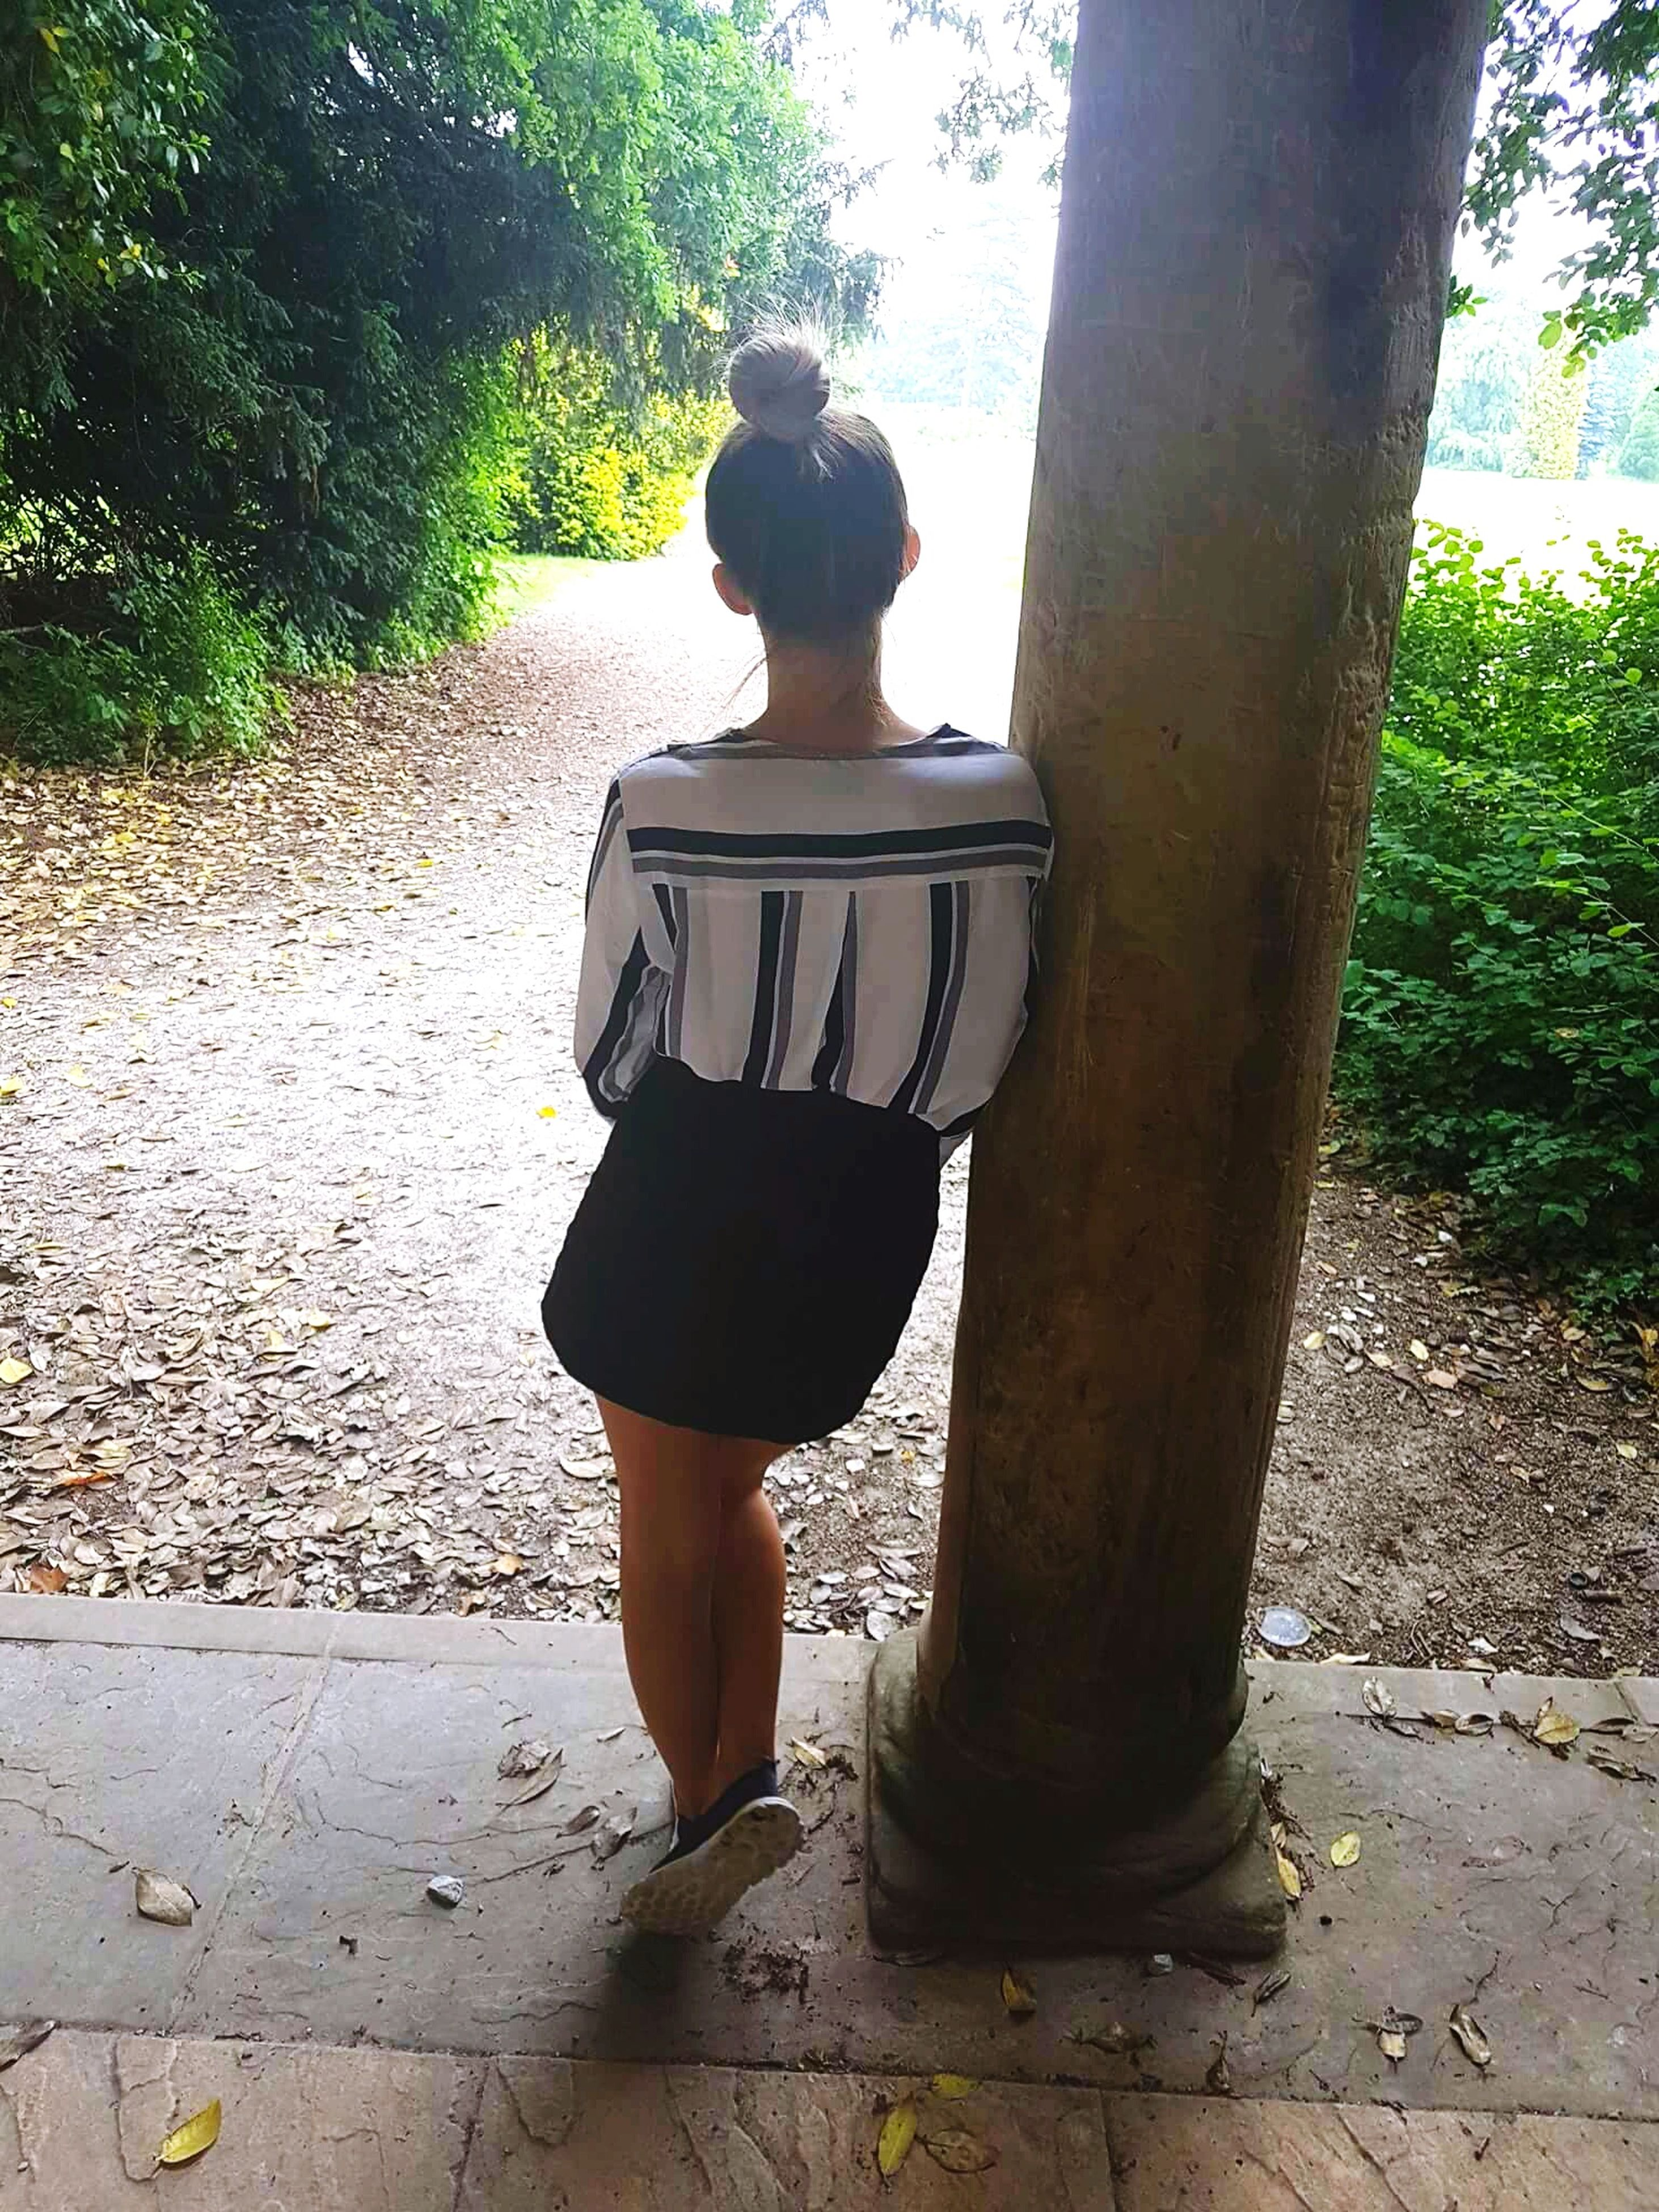 tree, real people, one person, rear view, standing, day, full length, tree trunk, leisure activity, lifestyles, casual clothing, growth, outdoors, nature, women, young adult, people